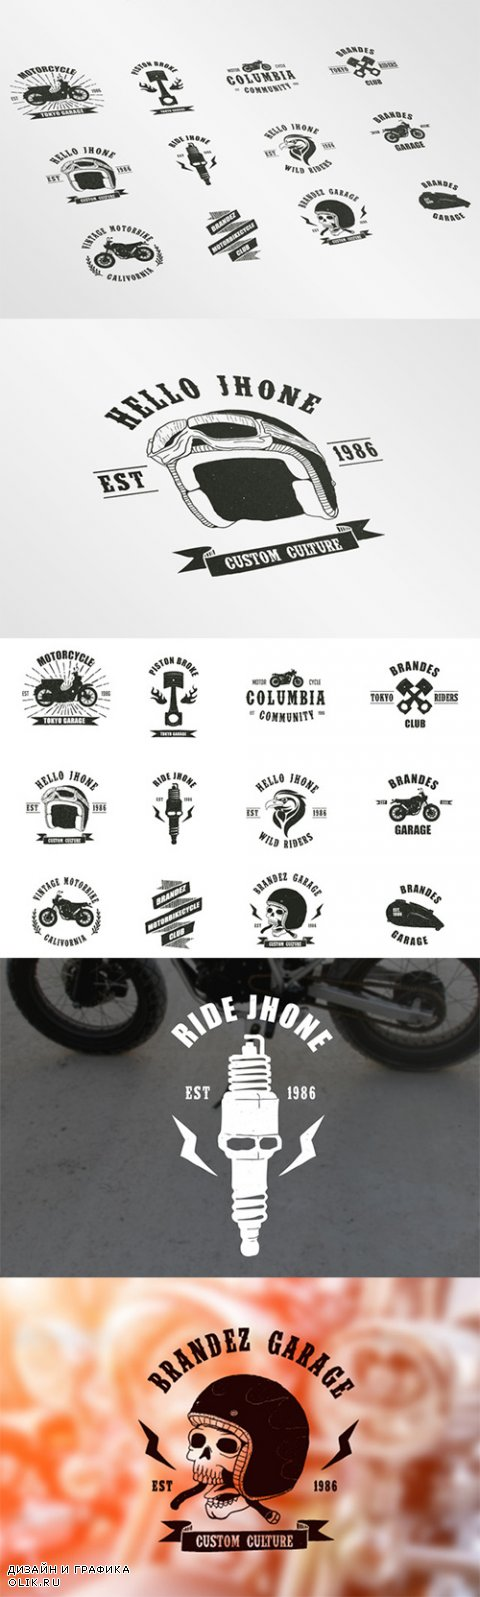 Vintage Badges Motorcycle - Creativemarket 167411